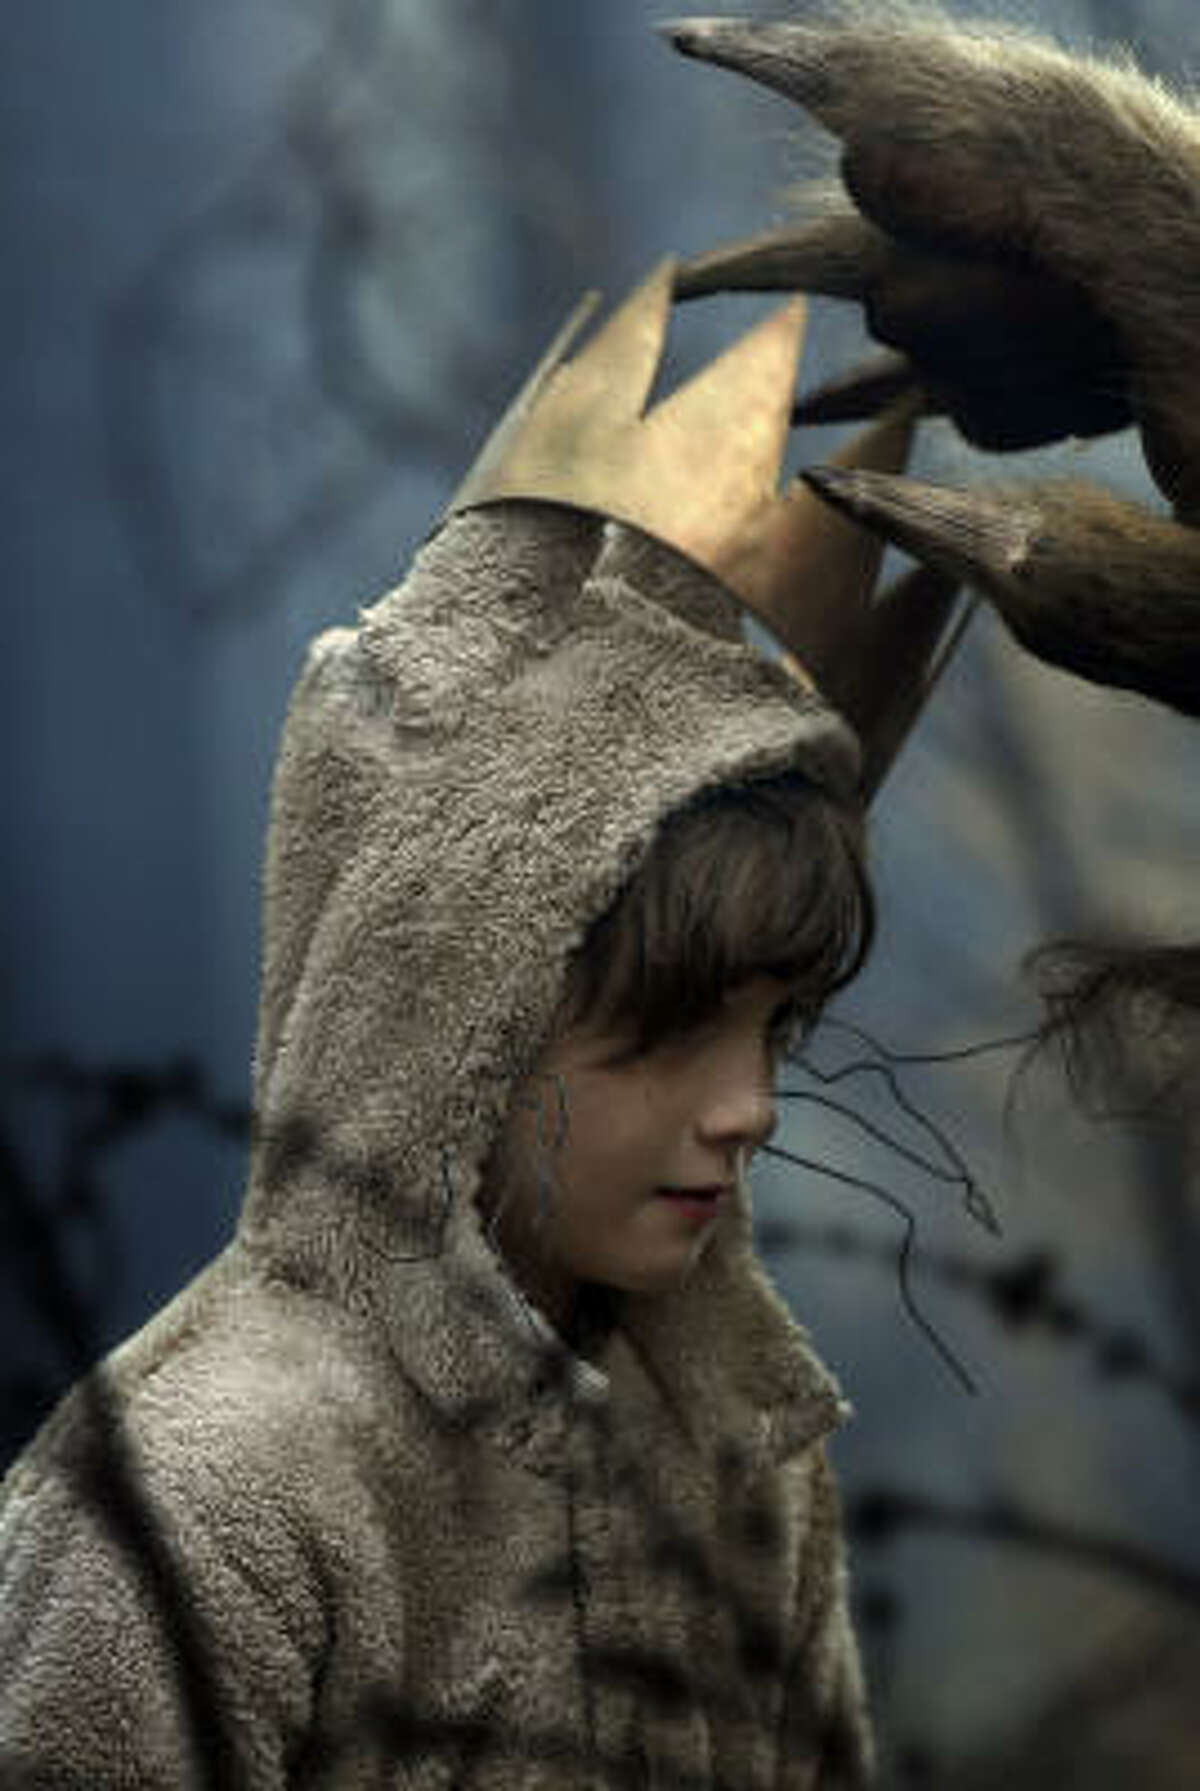 Where the Wild Things Are is directed by Spike Jonze and stars Catherine Keener, Mark Ruffalo, Forest Whitaker, Lauren Ambrose, James Gandolfini and Catherine O'Hara.